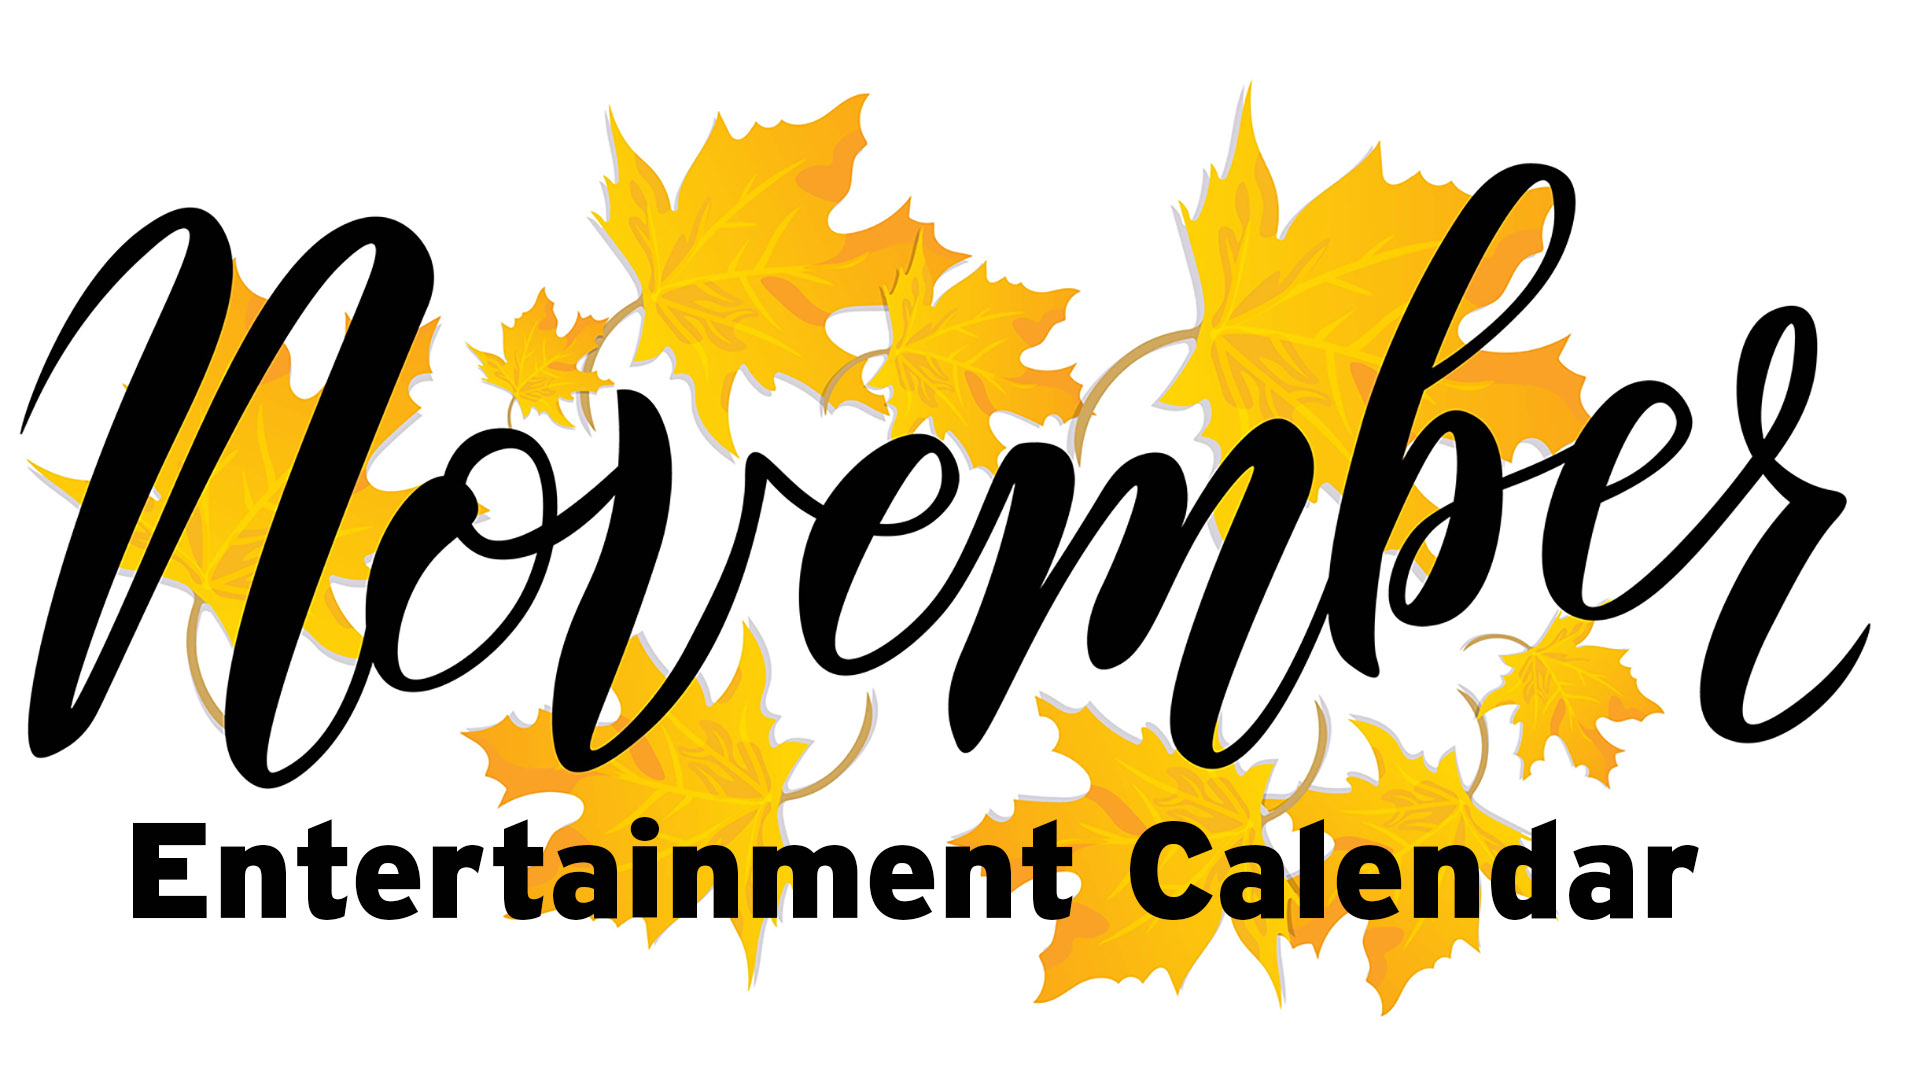 November entertainment calendar: Three Dog Night, Vienna Boys Choir, WRCA, 'Sound of Music,' more